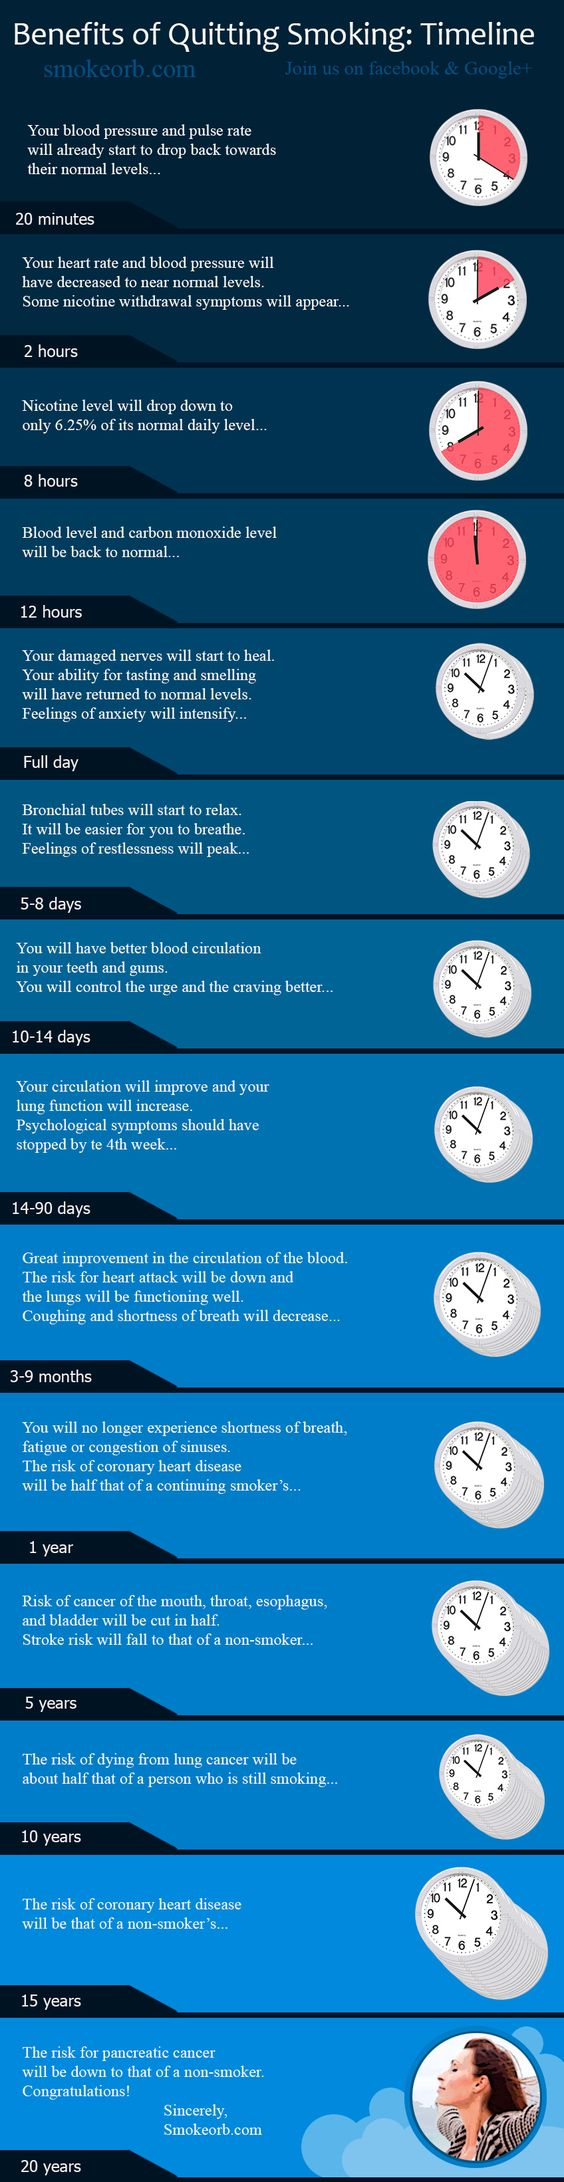 Benefits of Quitting Smoking: Timeline (Infographic)